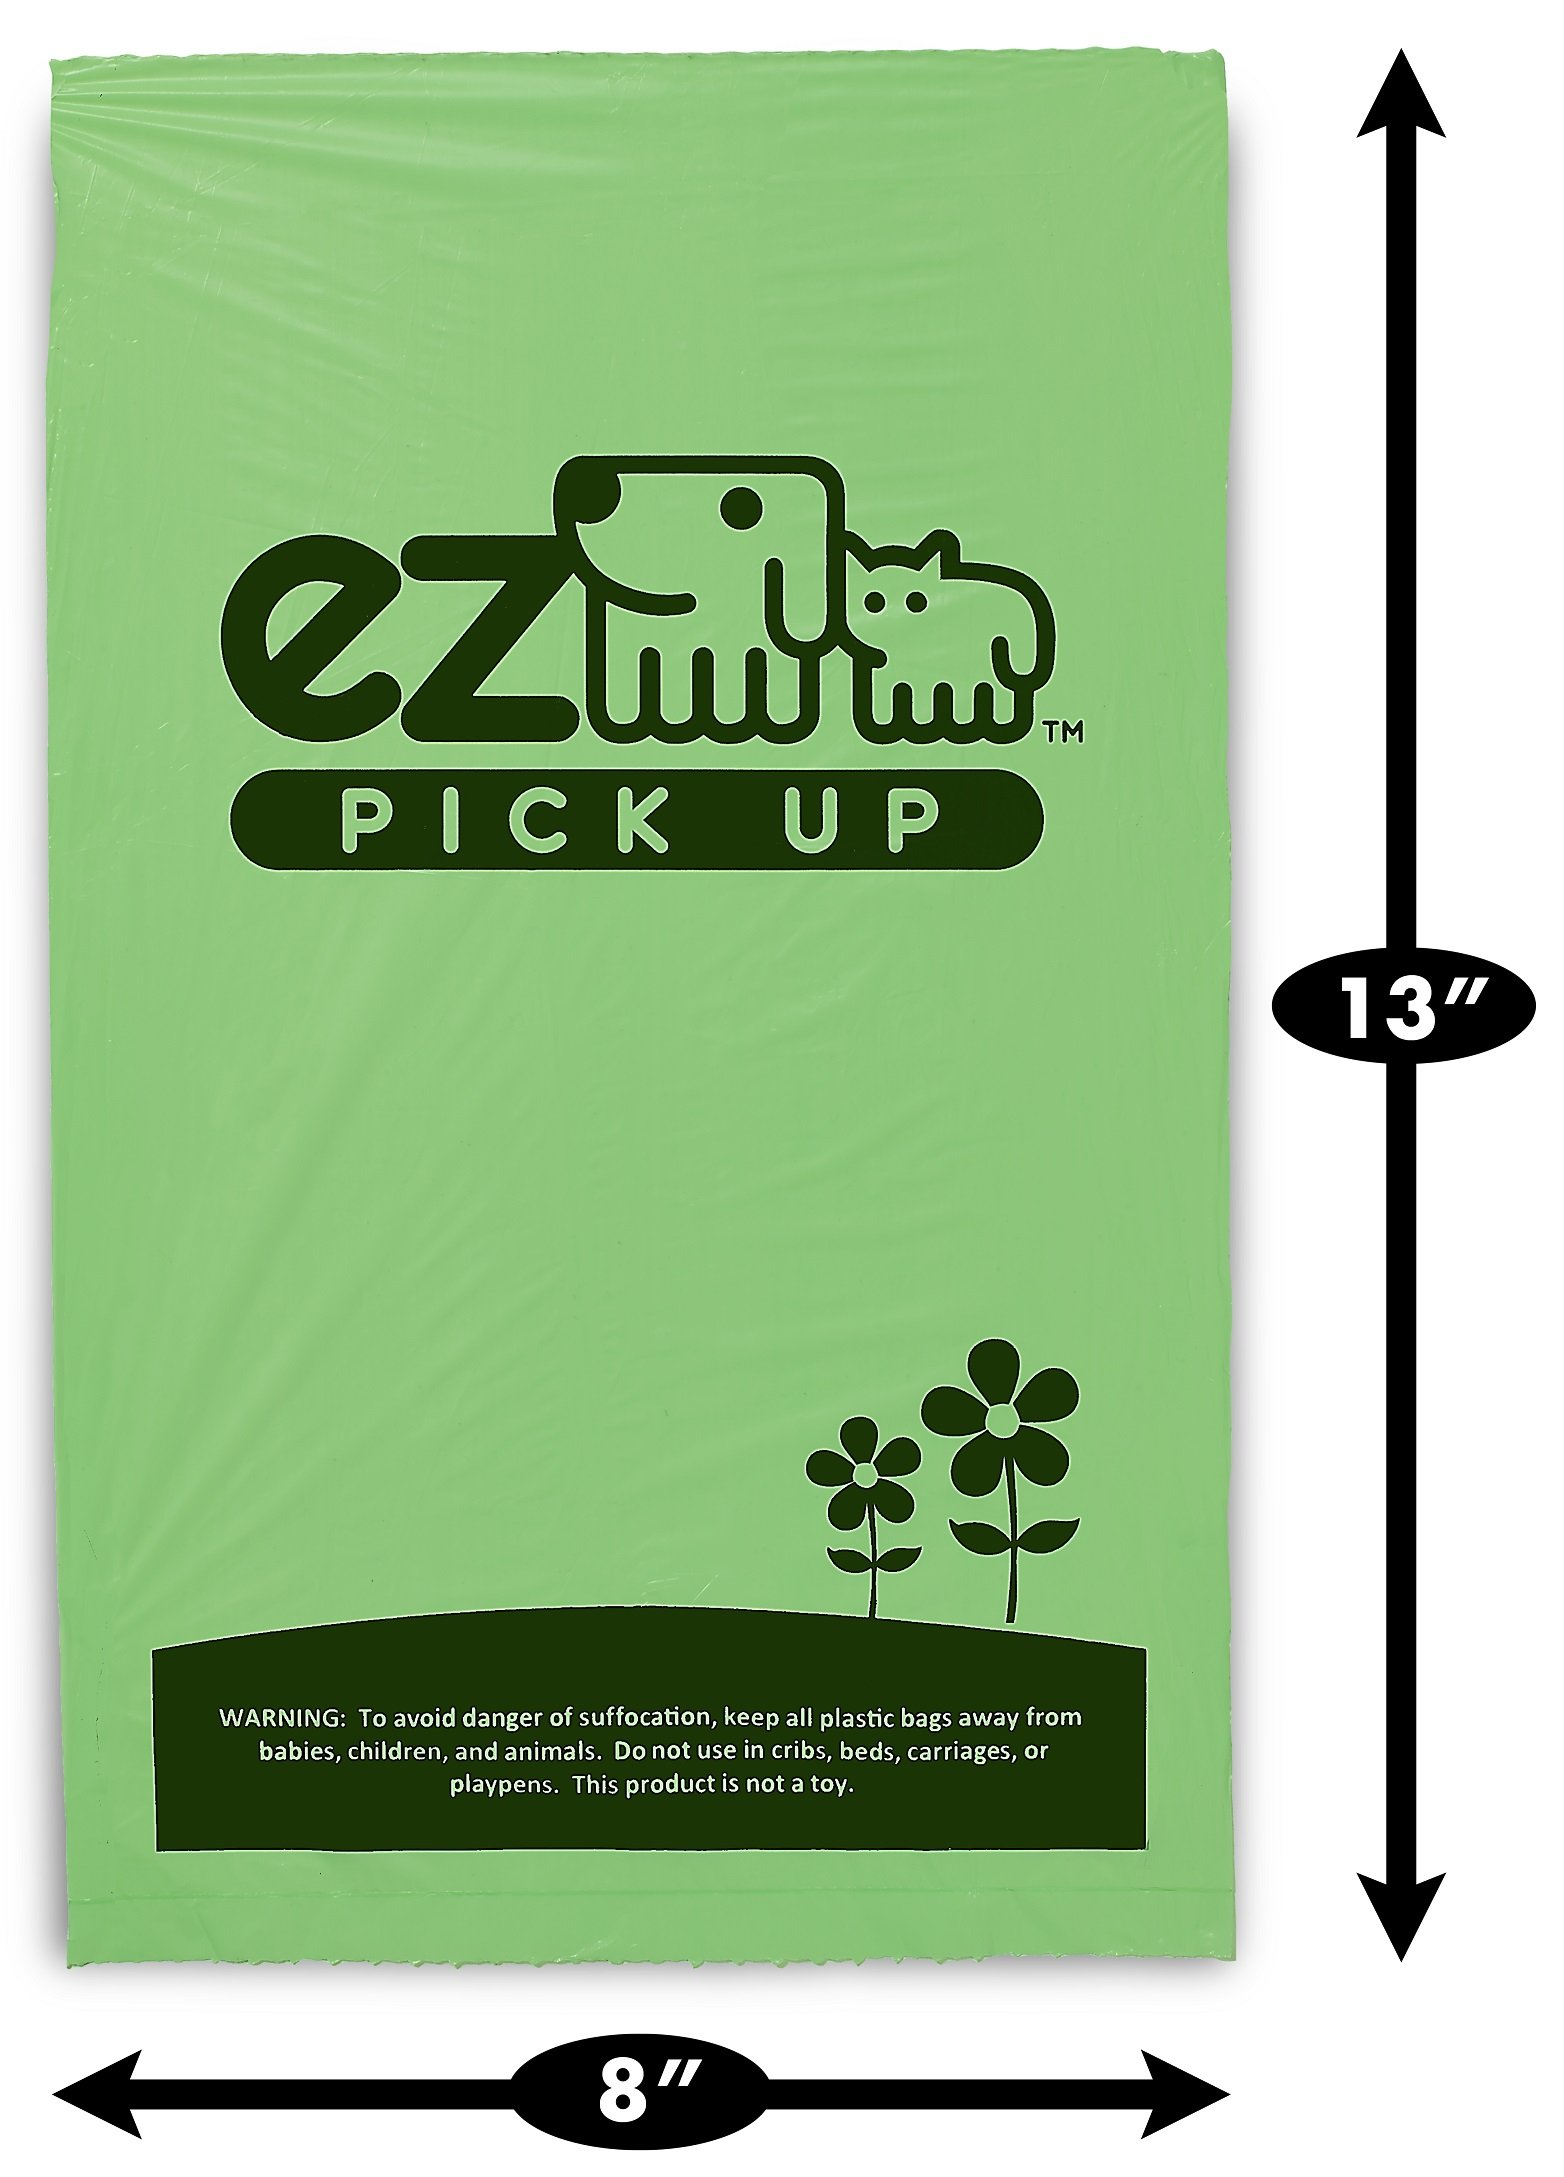 1000 Pet Waste Disposal Dog Poop Bags, EZ Pickup Bags Green (single roll, not on small rolls) by EZ (Image #2)